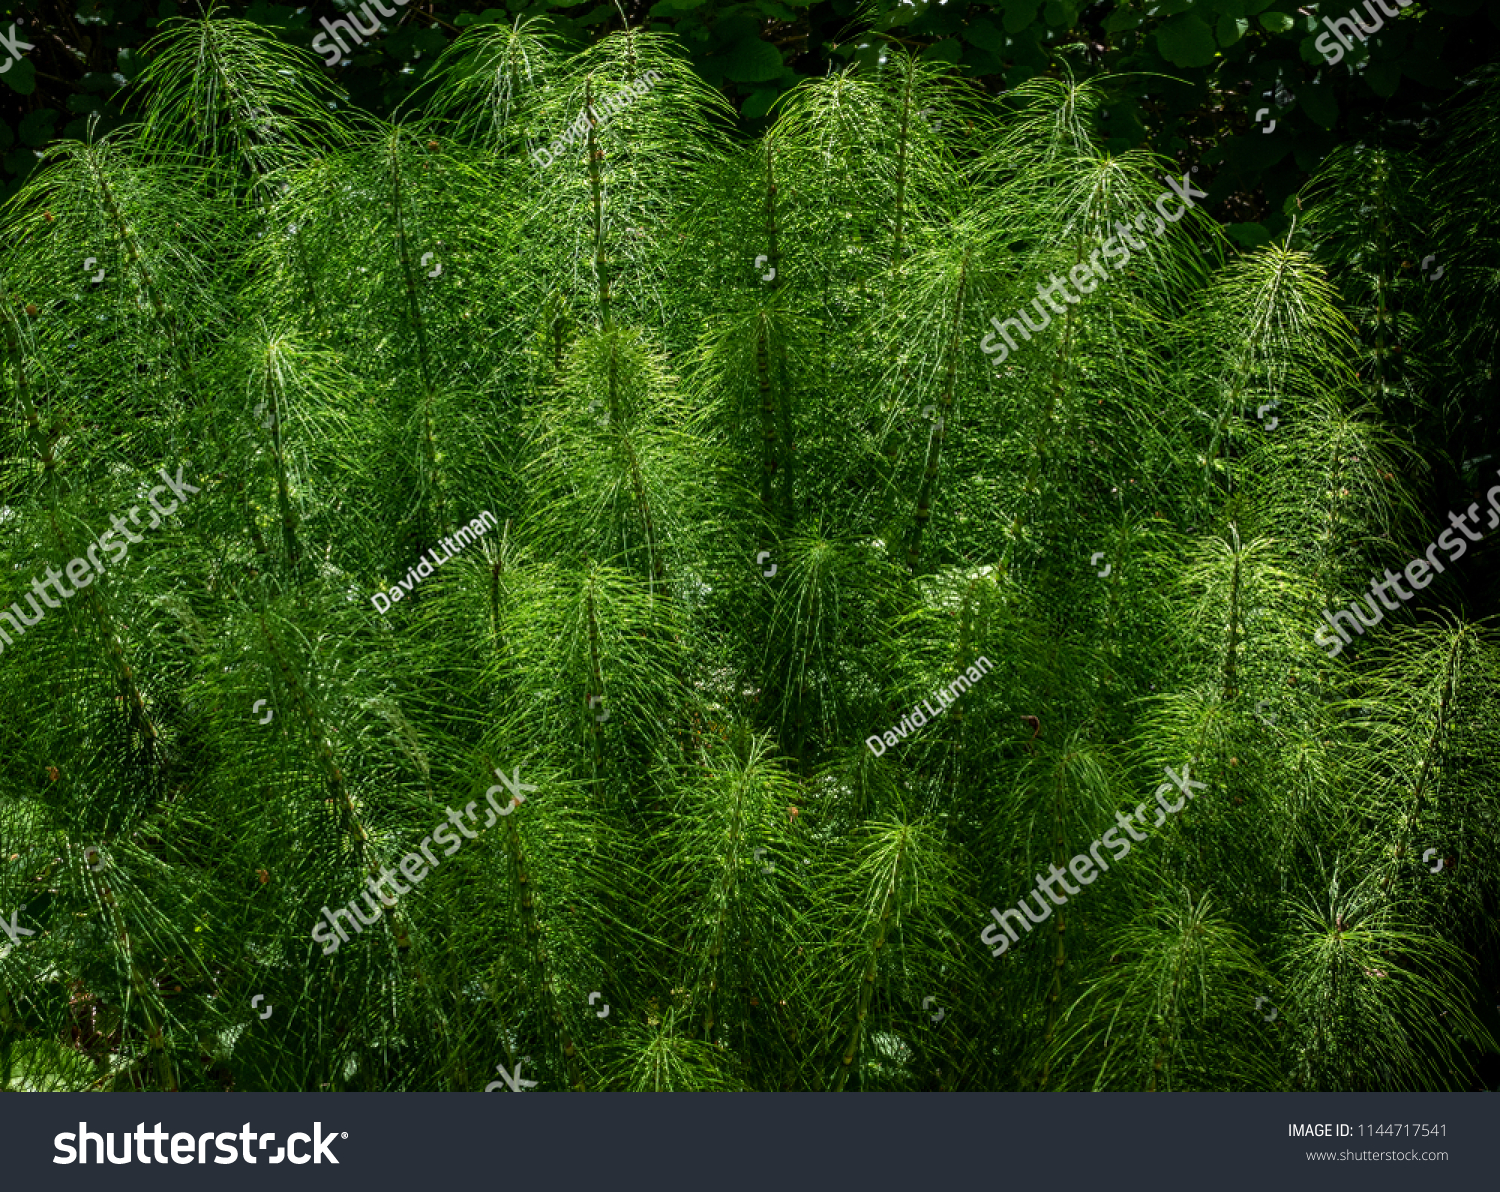 Sunlight beams through a shaded forested area and highlights a patch of Northern Giant Horsetails (Equisetum telmateia), in Monterey, along the central coast of California.